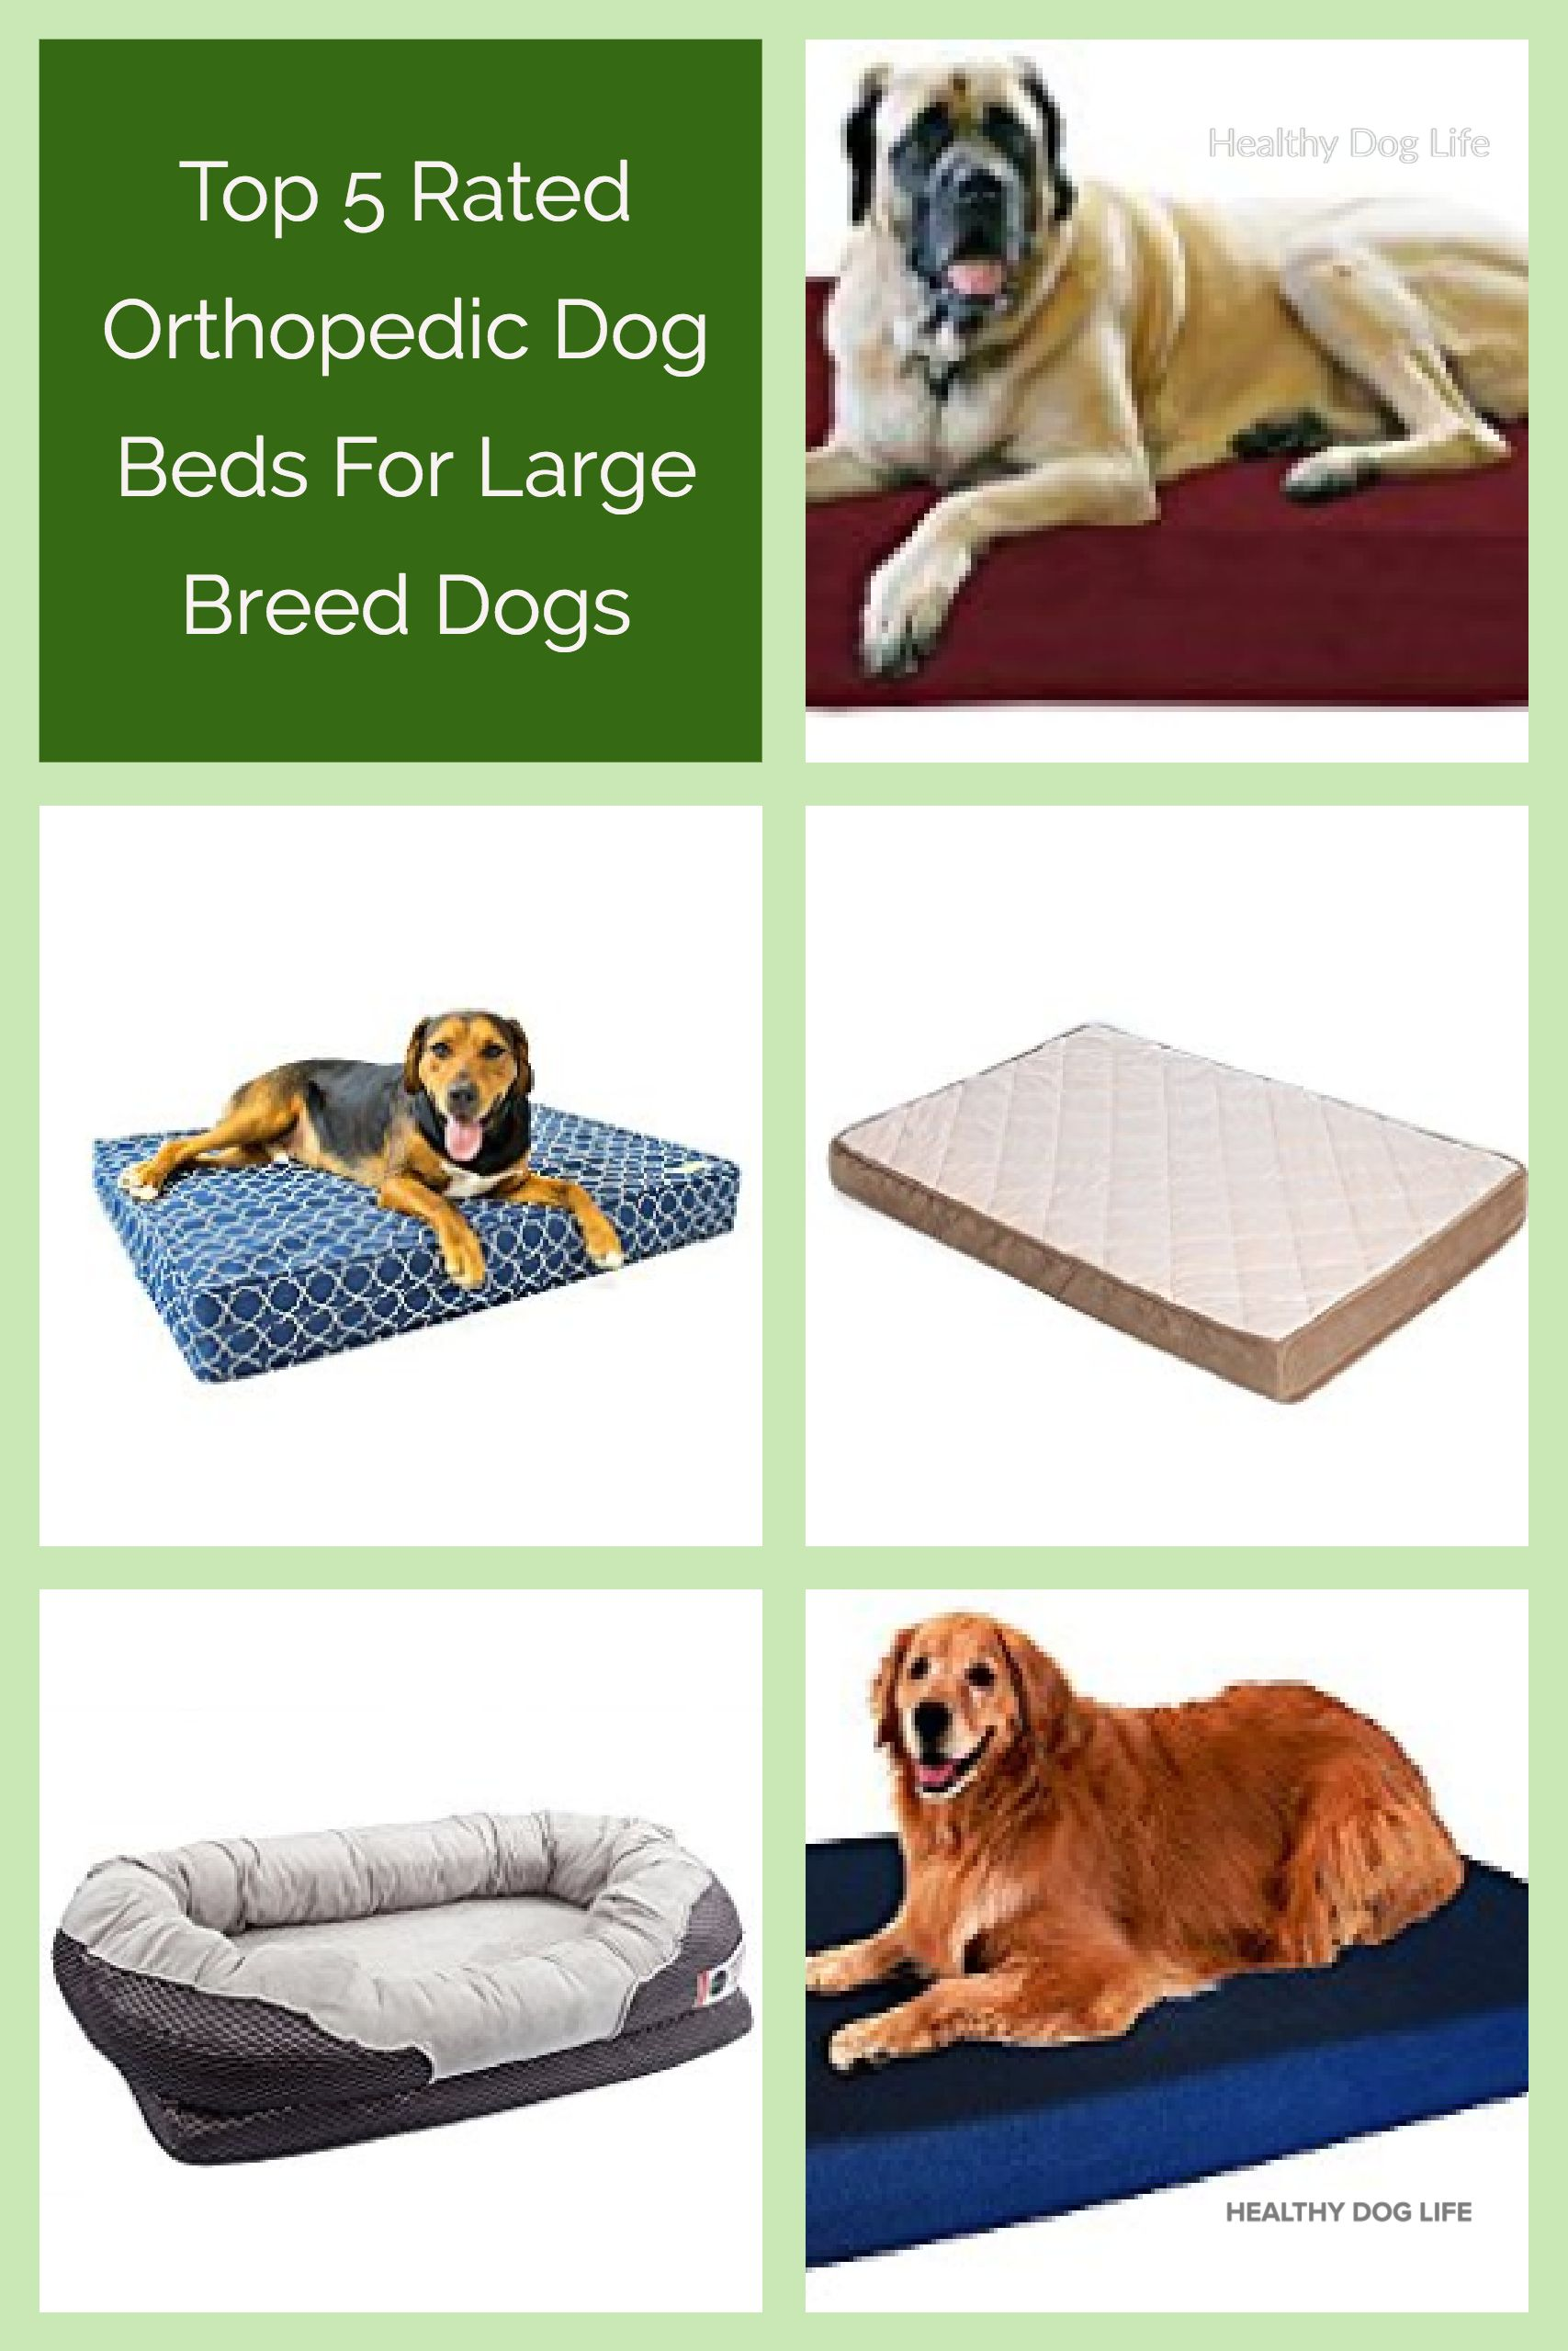 Top 5 Rated Orthopedic Dog Beds For Large Dogs (With